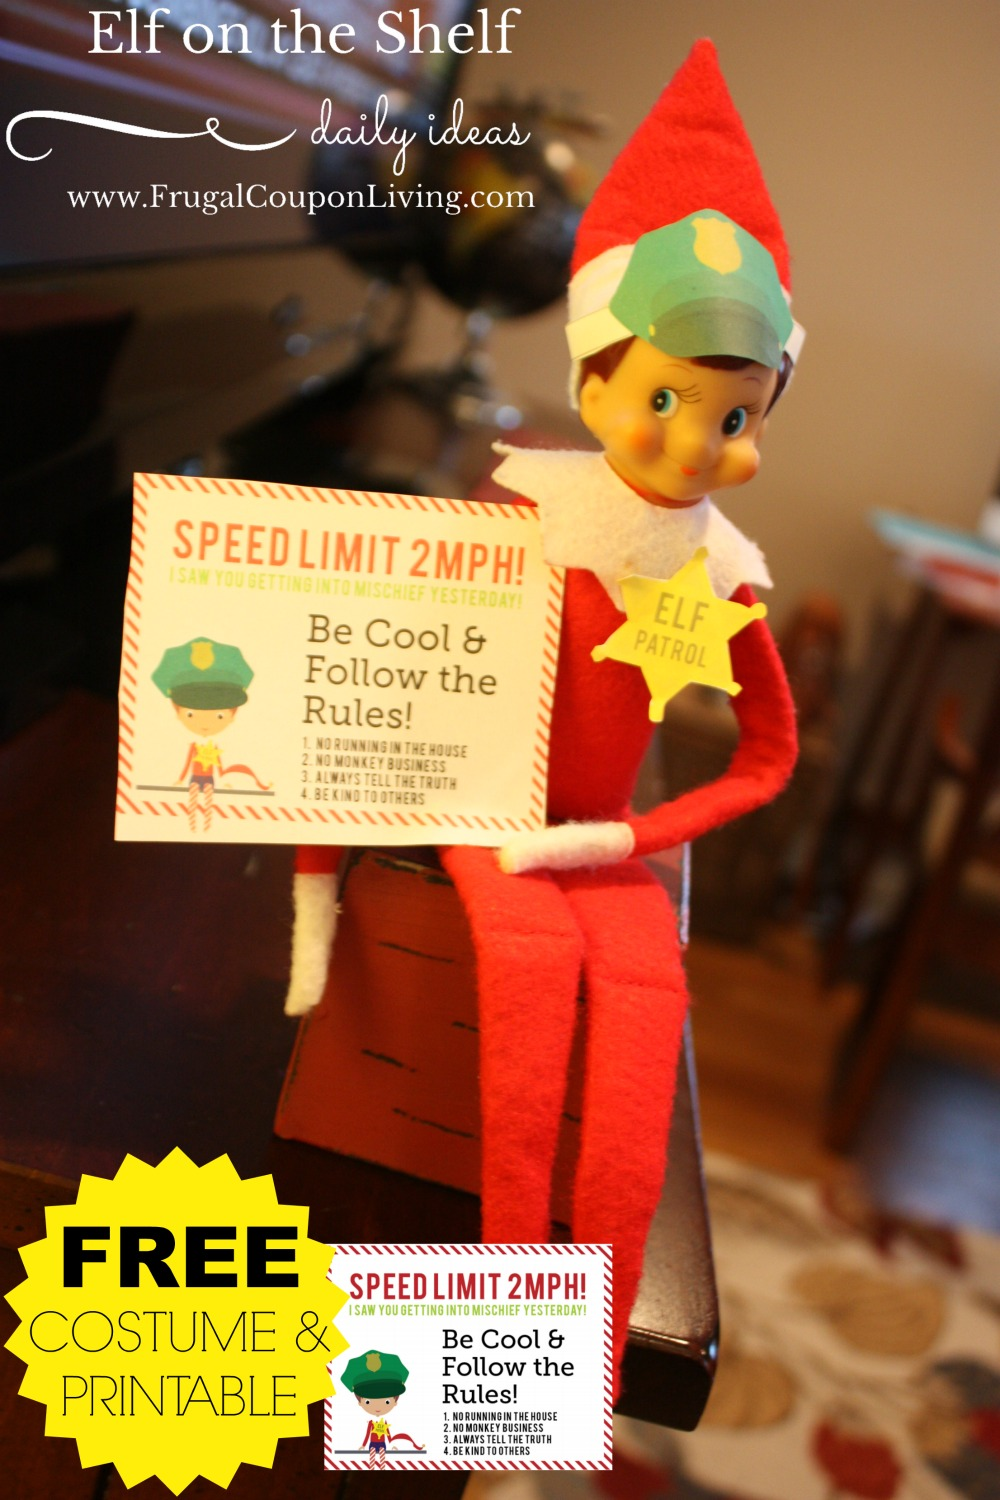 free-elf-costume-elf-on-the-shelf-ideas-follow-rules-frugal-coupon-living